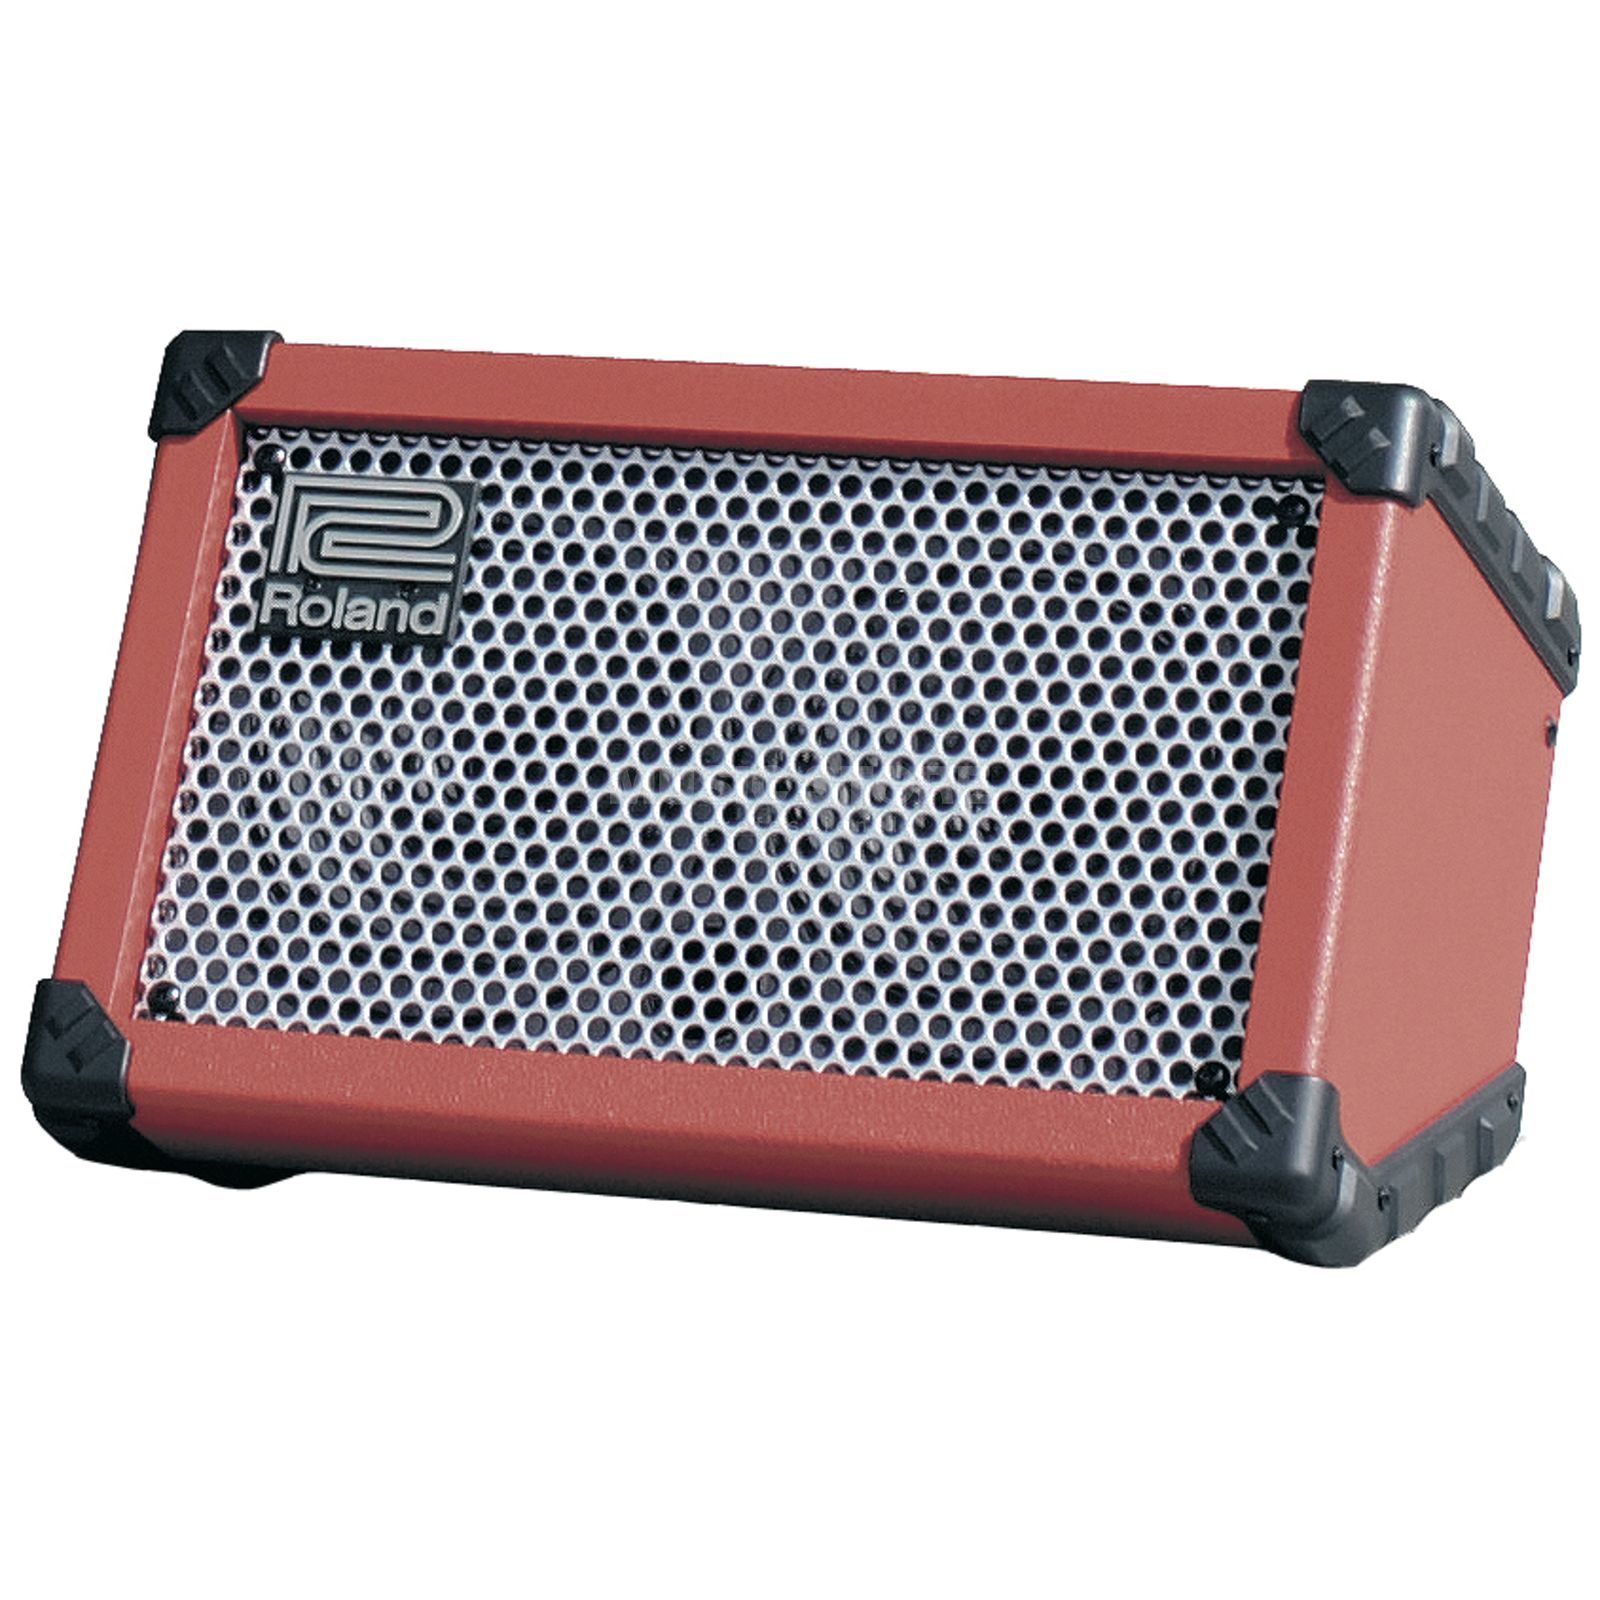 Roland Cube Street Battery Powered Bu sker's Amplifier, Red   Produktbillede